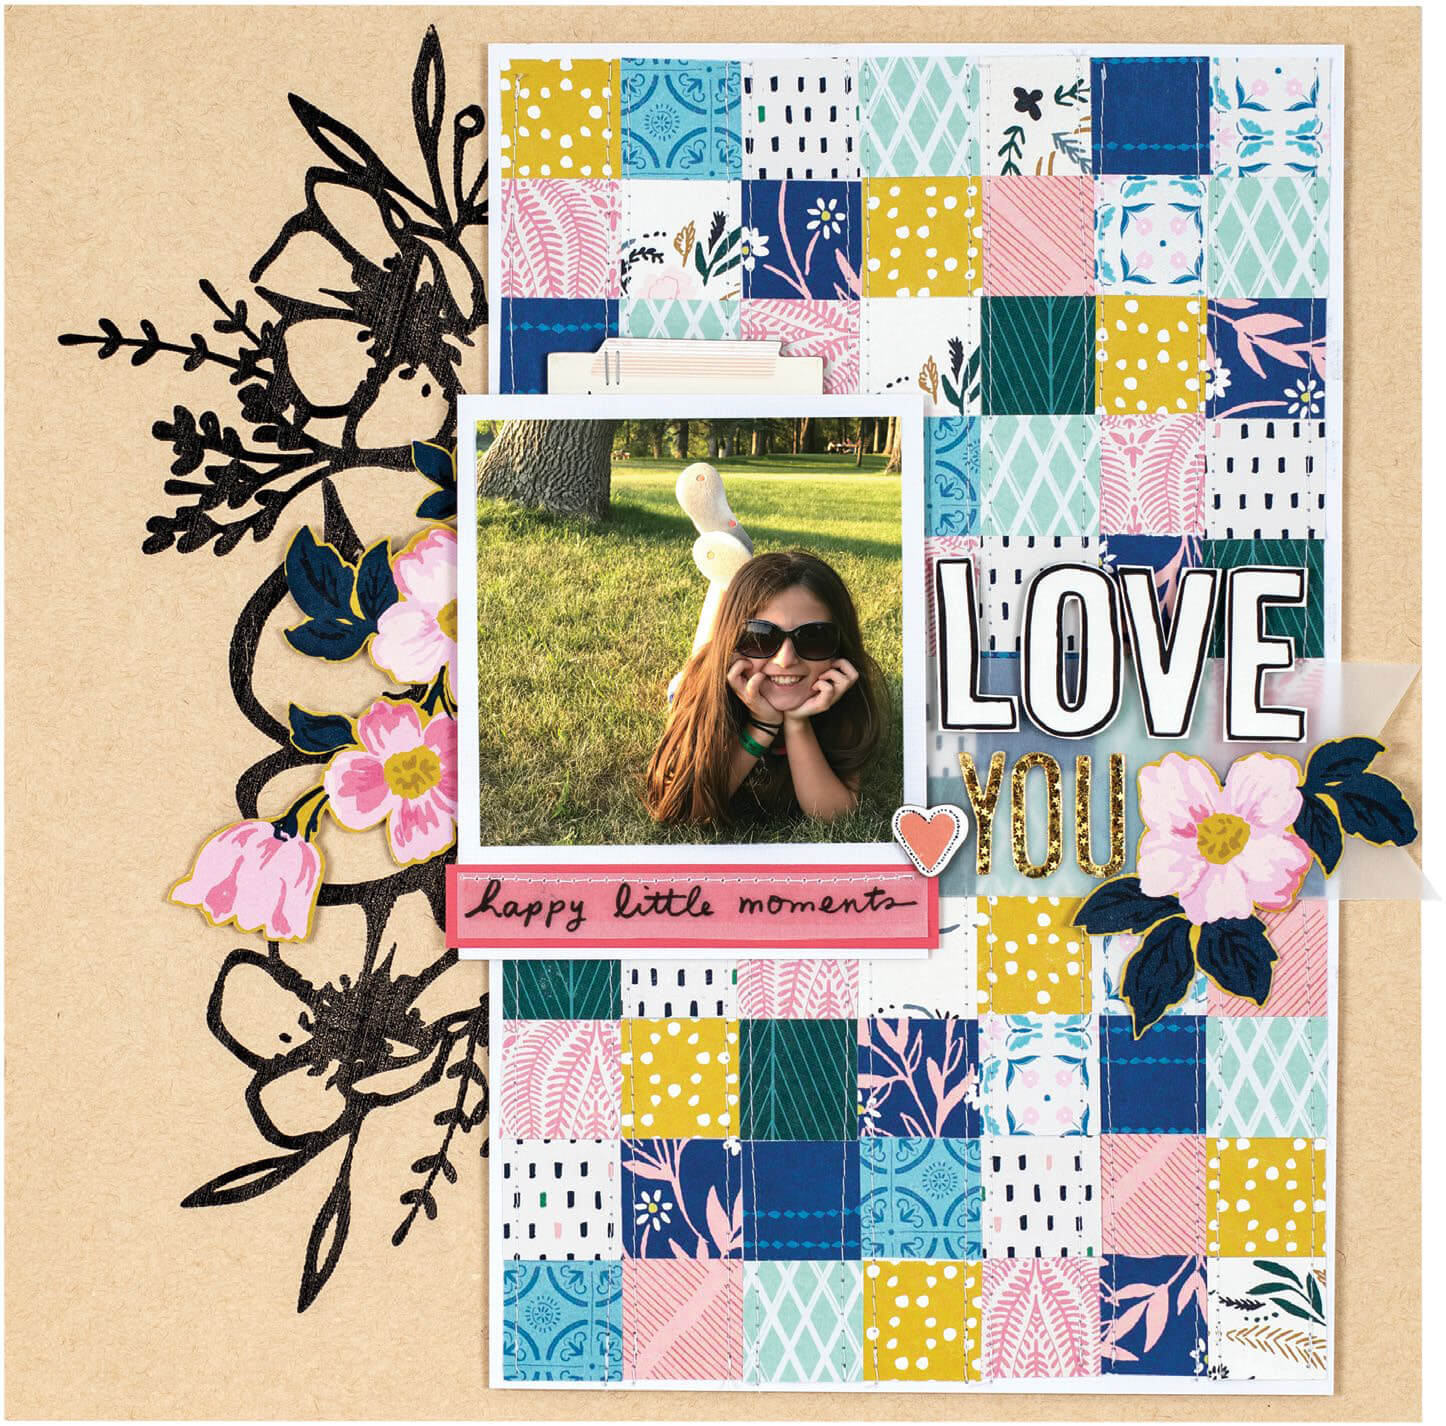 Scrapbook & Cards Today - Summer 2019 - Love You layout by Nicole Nowosad